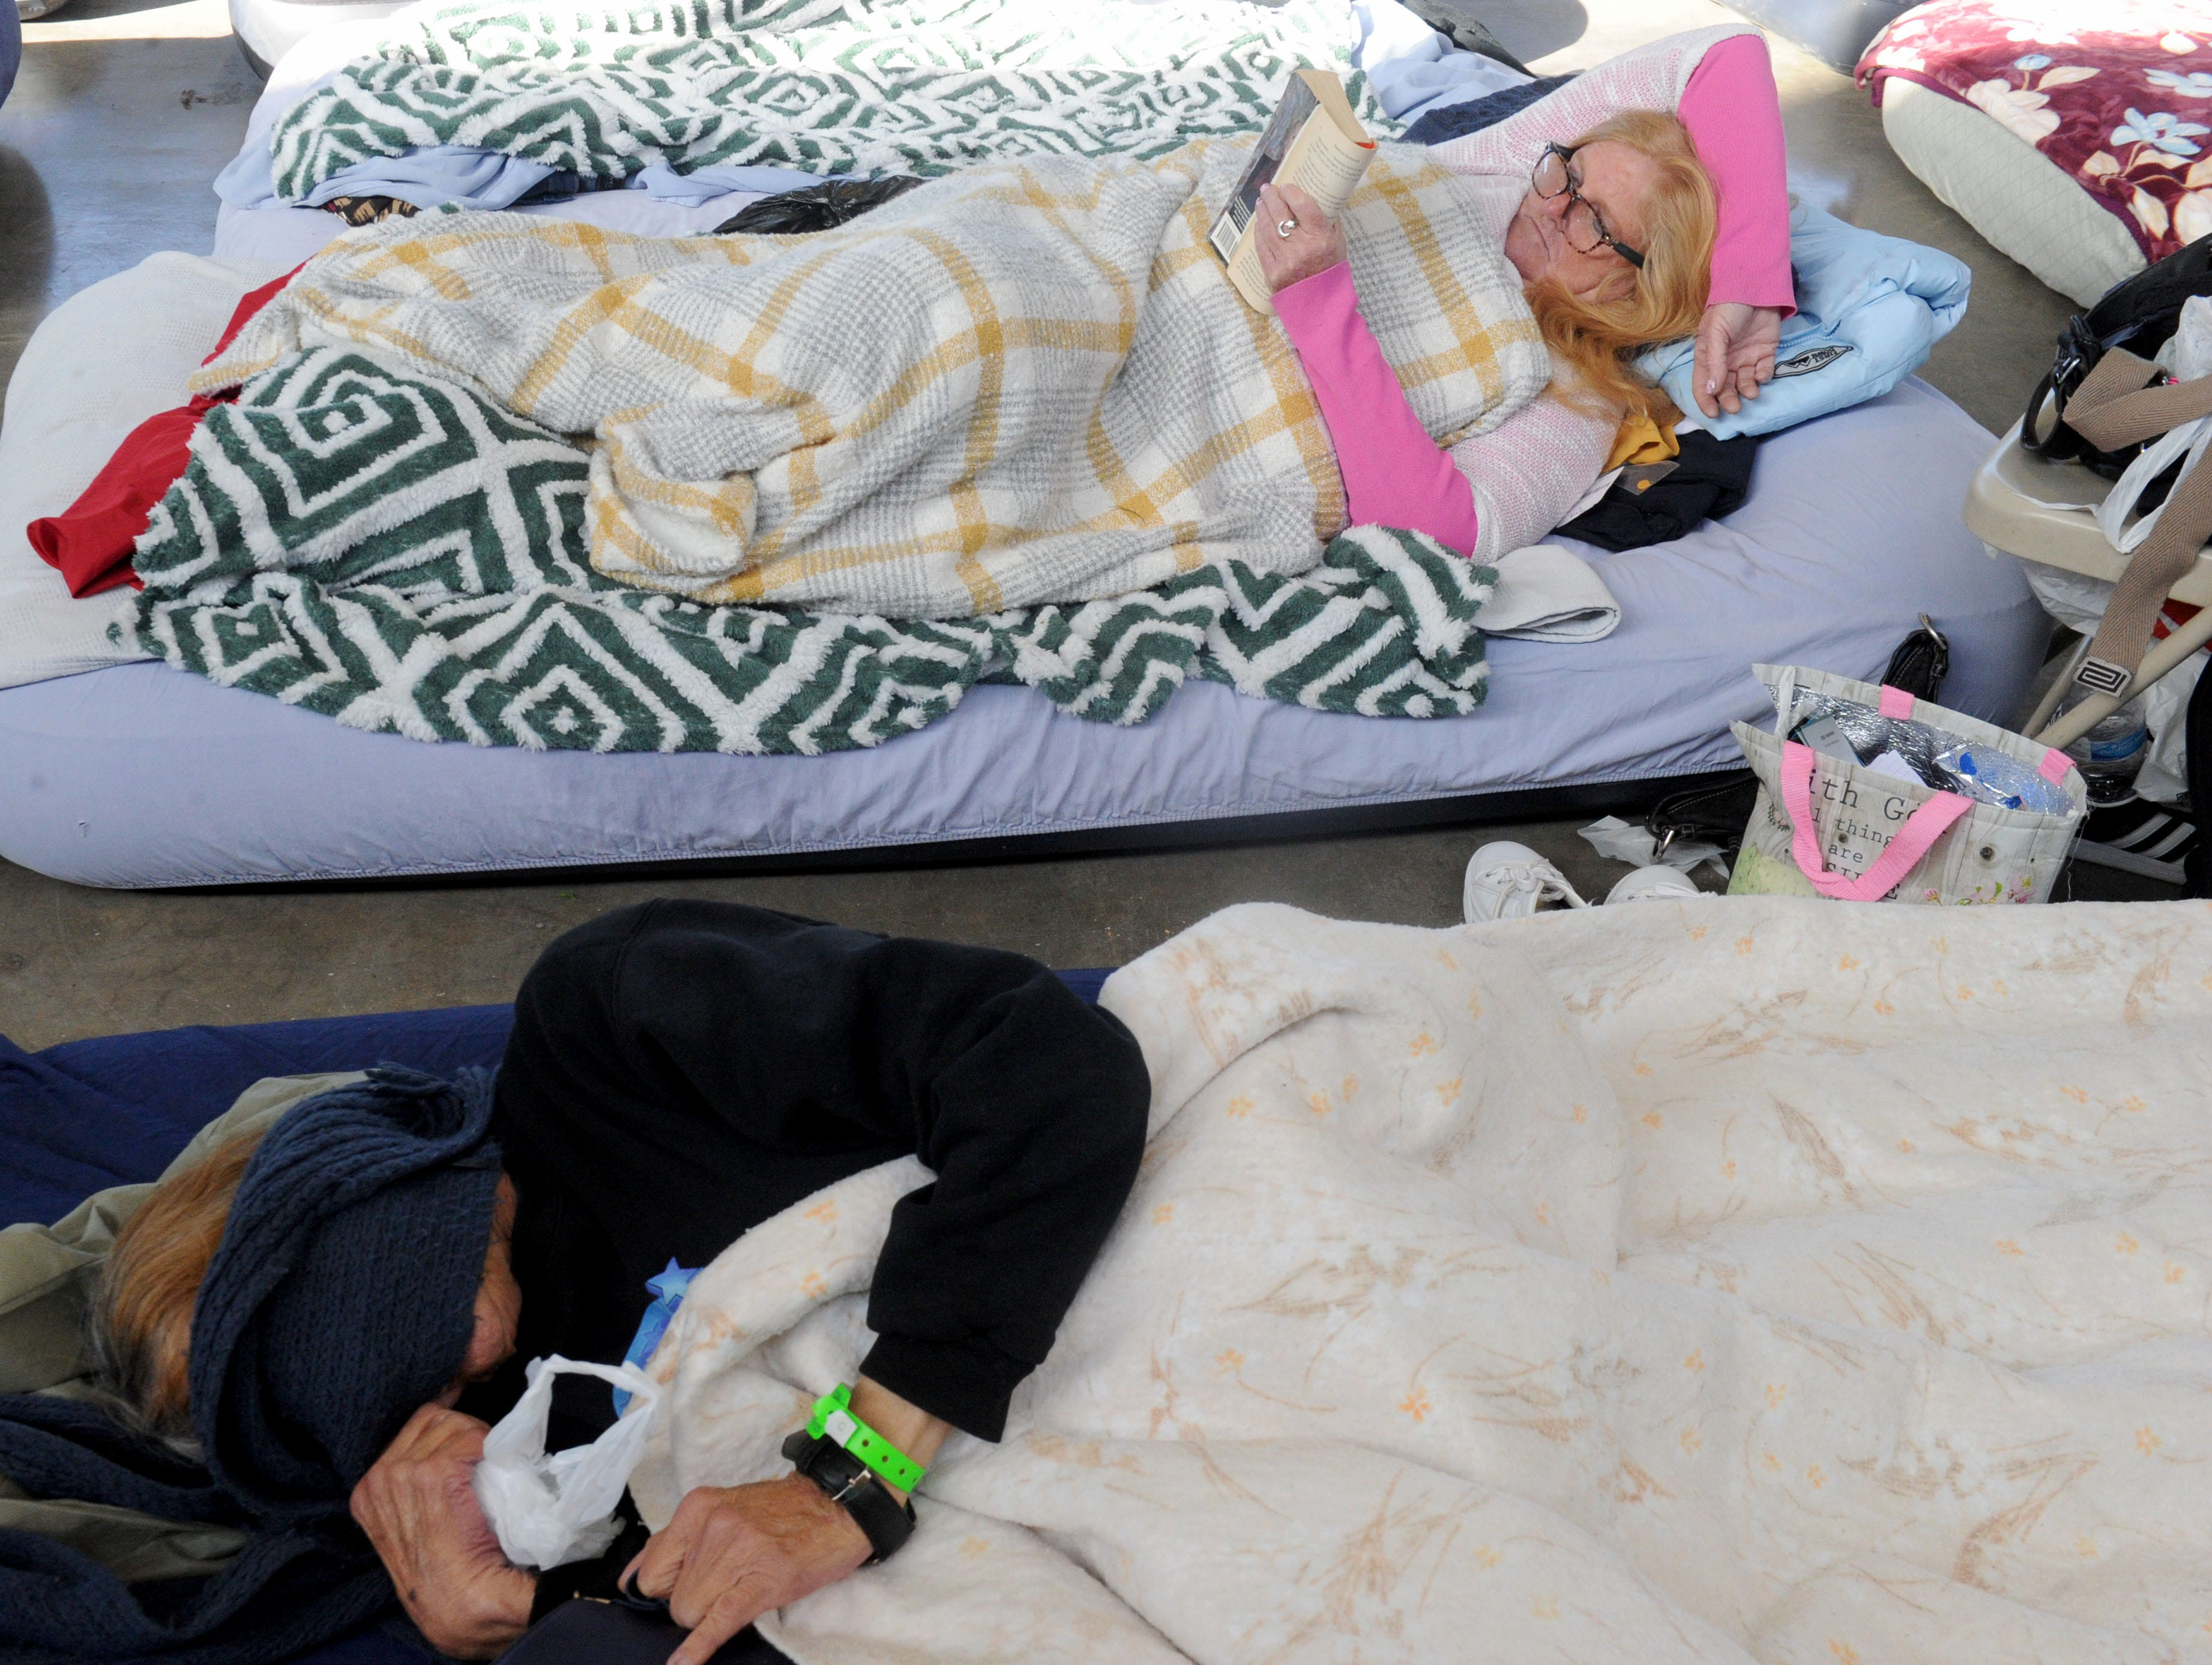 Lila Ashmore reads a book while in bed at the Oxnard homeless shelter.